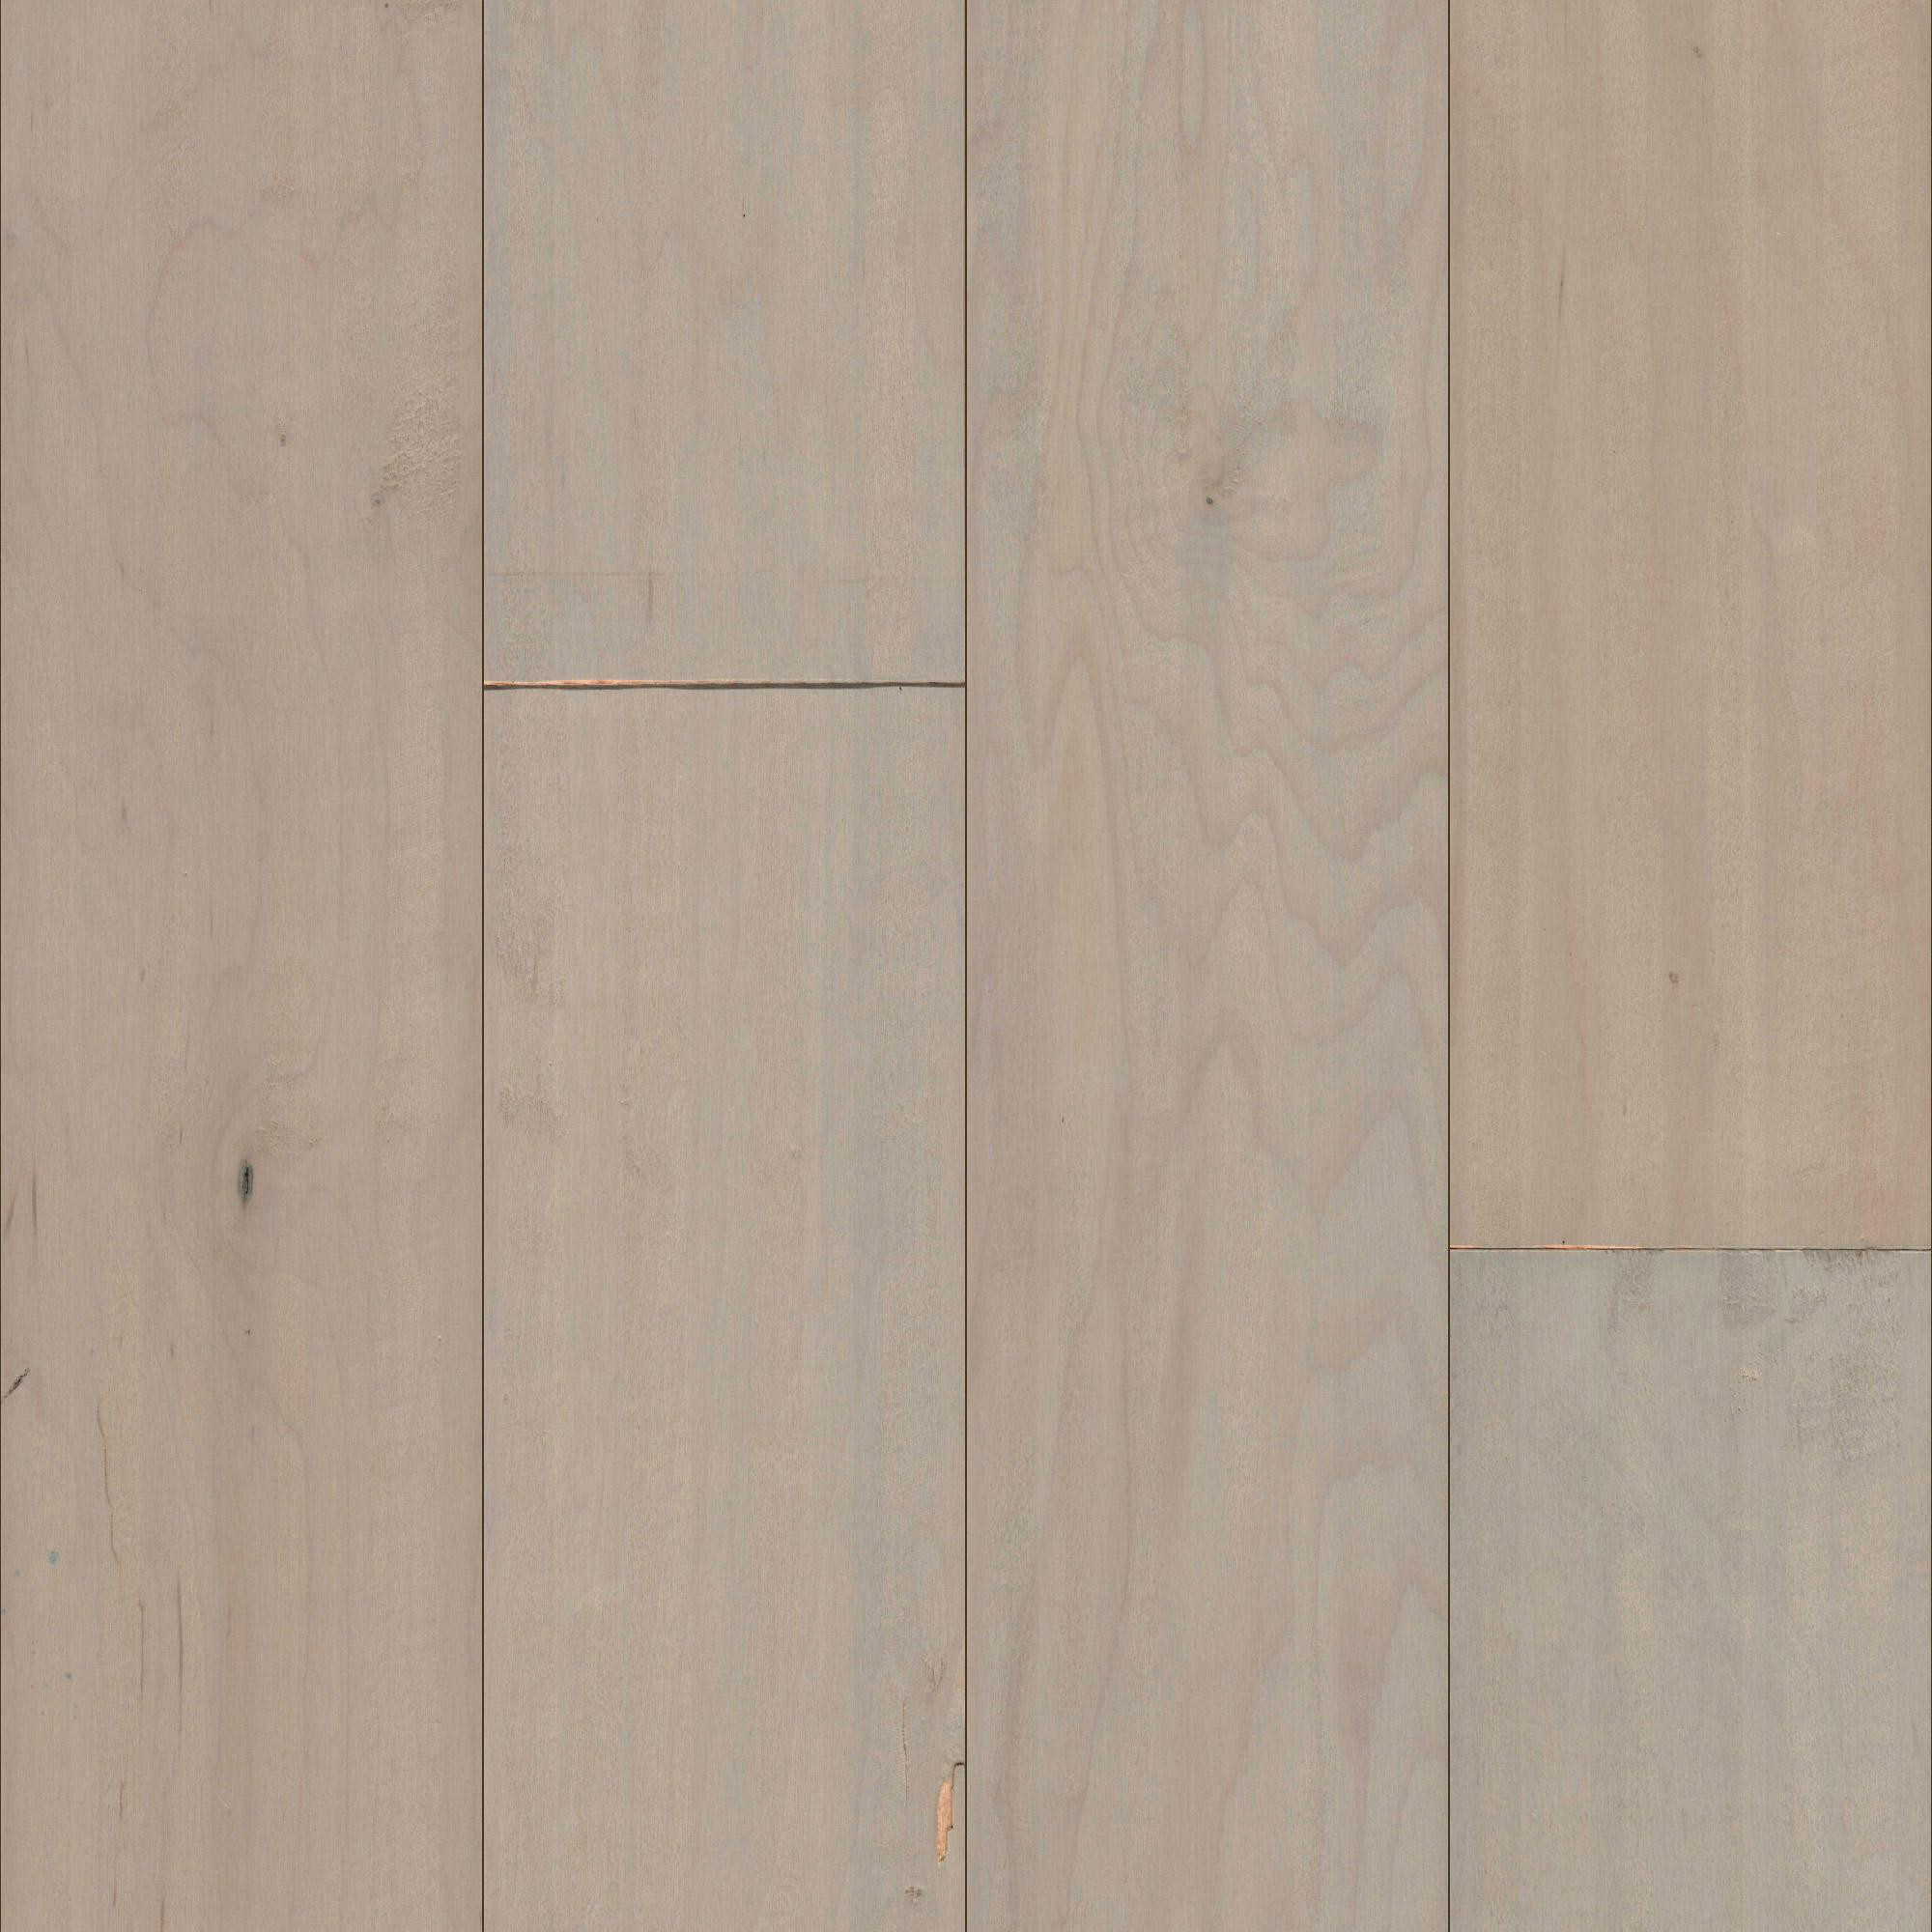 4 inch maple hardwood flooring of mullican lincolnshire sculpted maple frost 5 engineered hardwood for mullican lincolnshire sculpted maple frost 5 engineered hardwood flooring